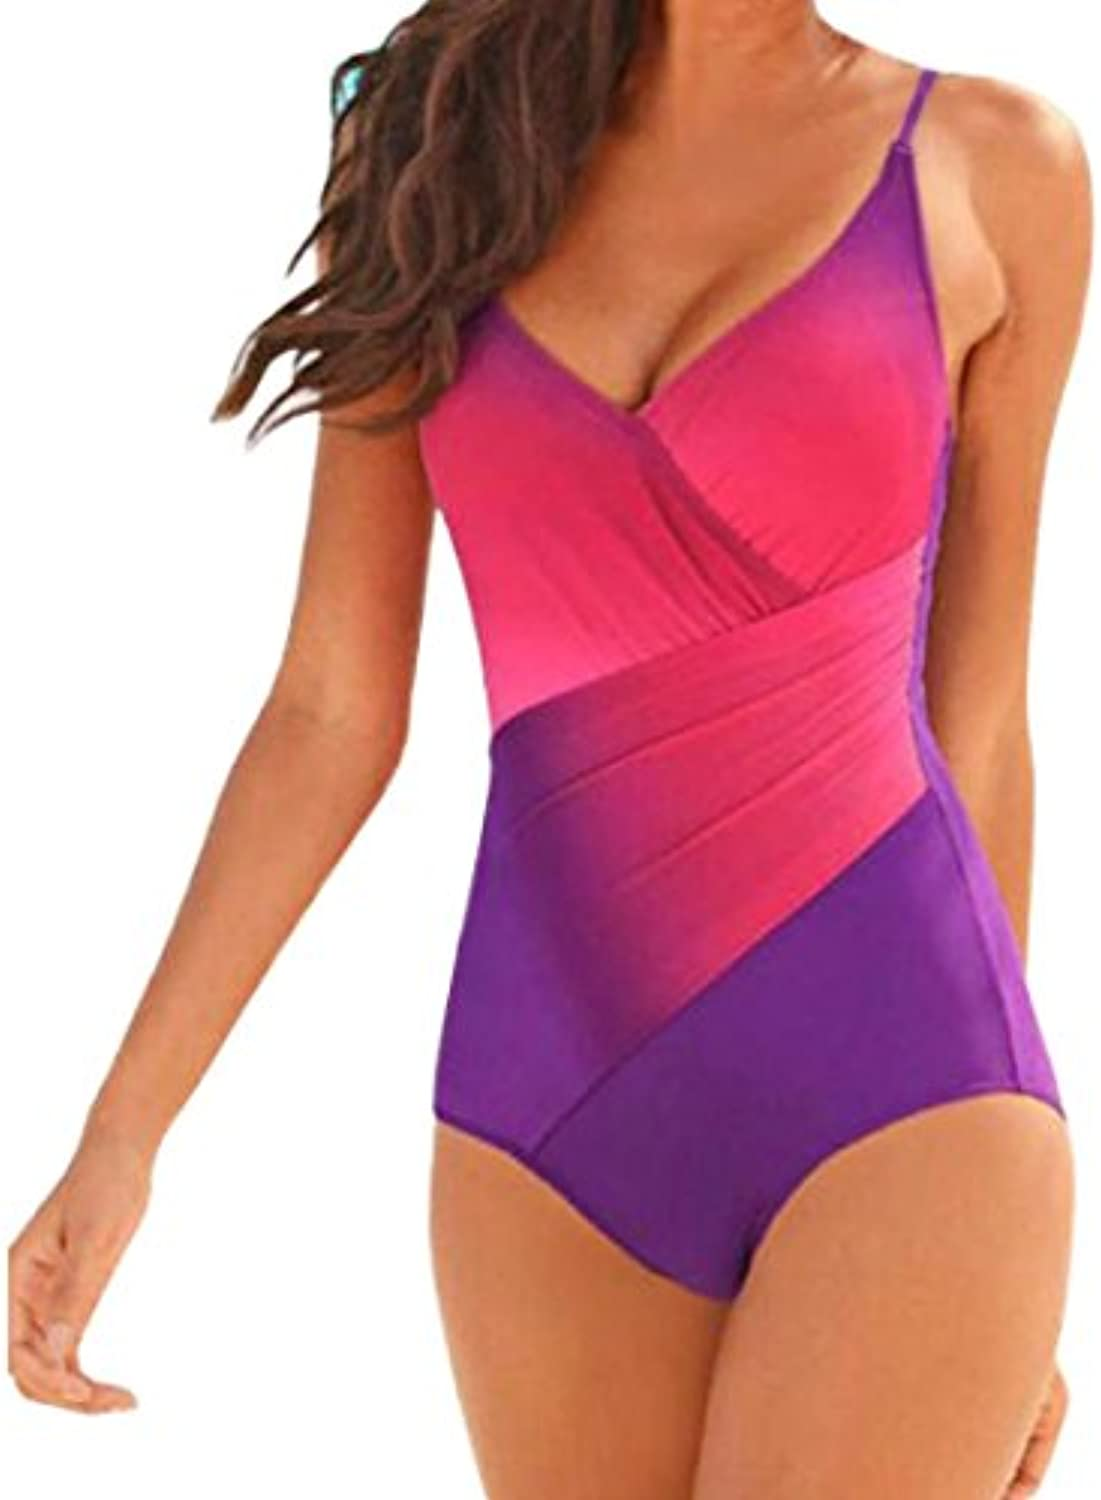 Ouneed Mujeres una pieza bikini Push-up acolchado Bra Multicolor Swimsuit